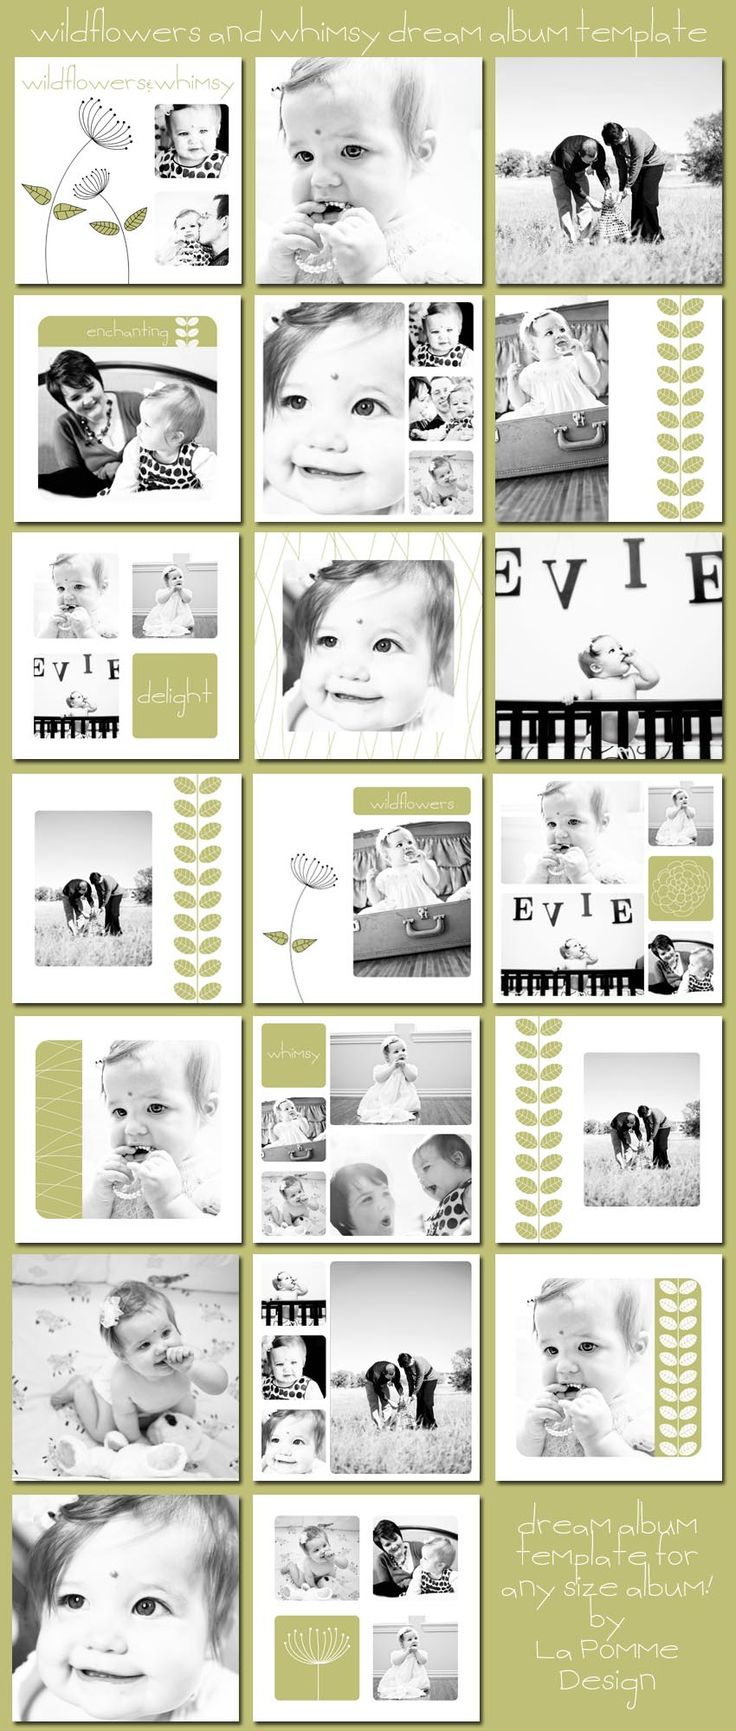 Bien connu 12 best kids photo album design images on Pinterest | Album design  PX73